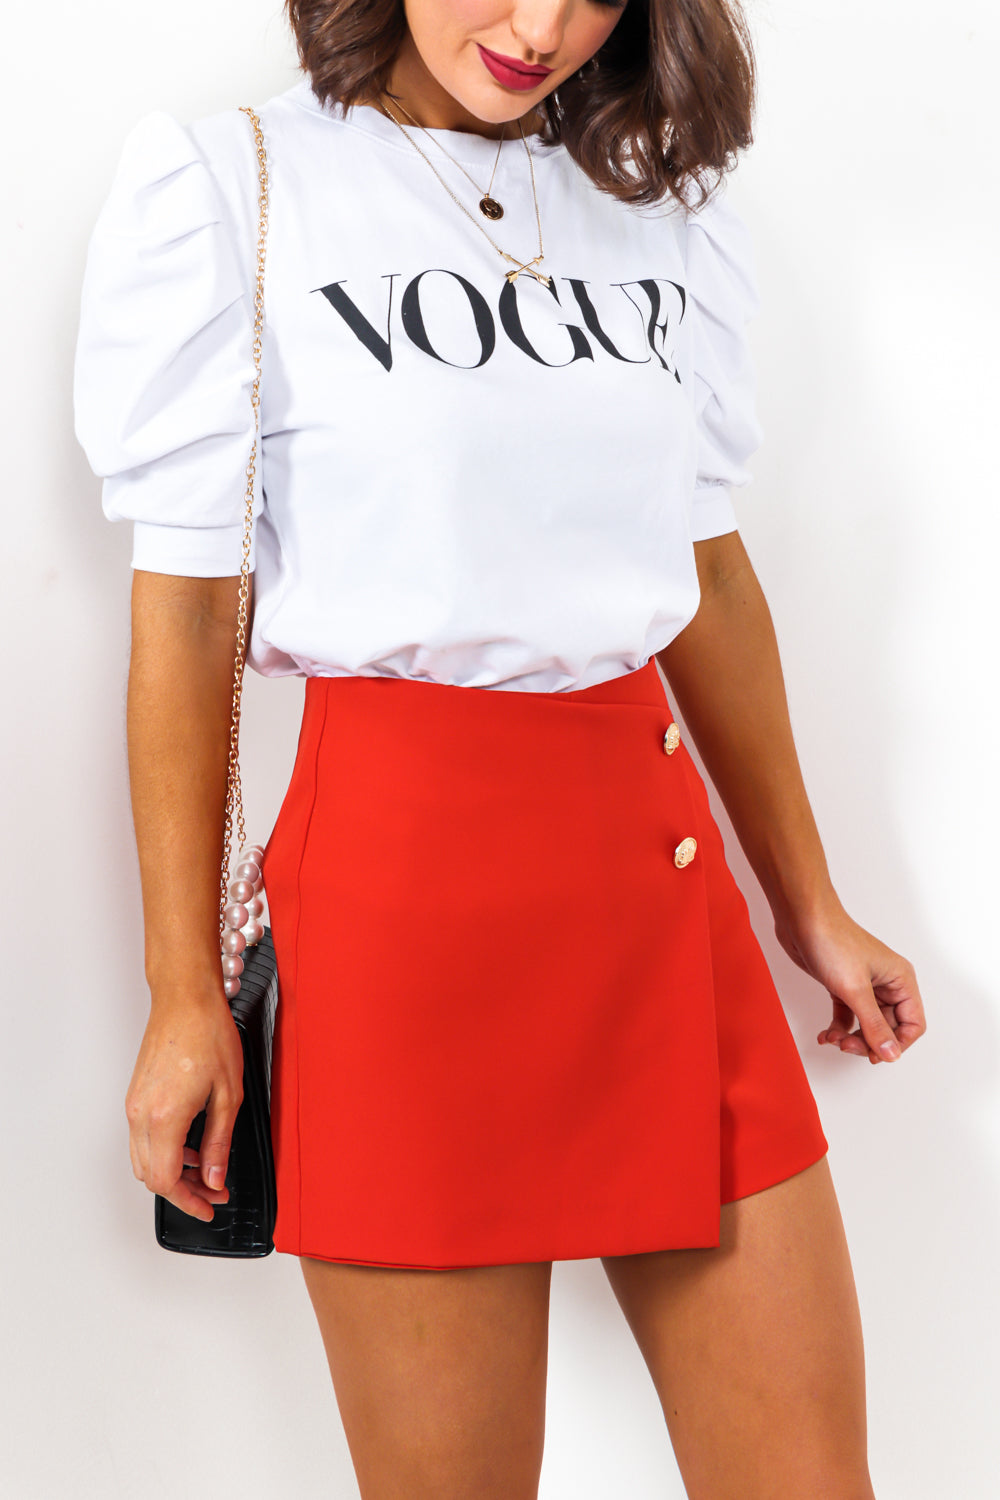 So Vogue - Top In WHITE